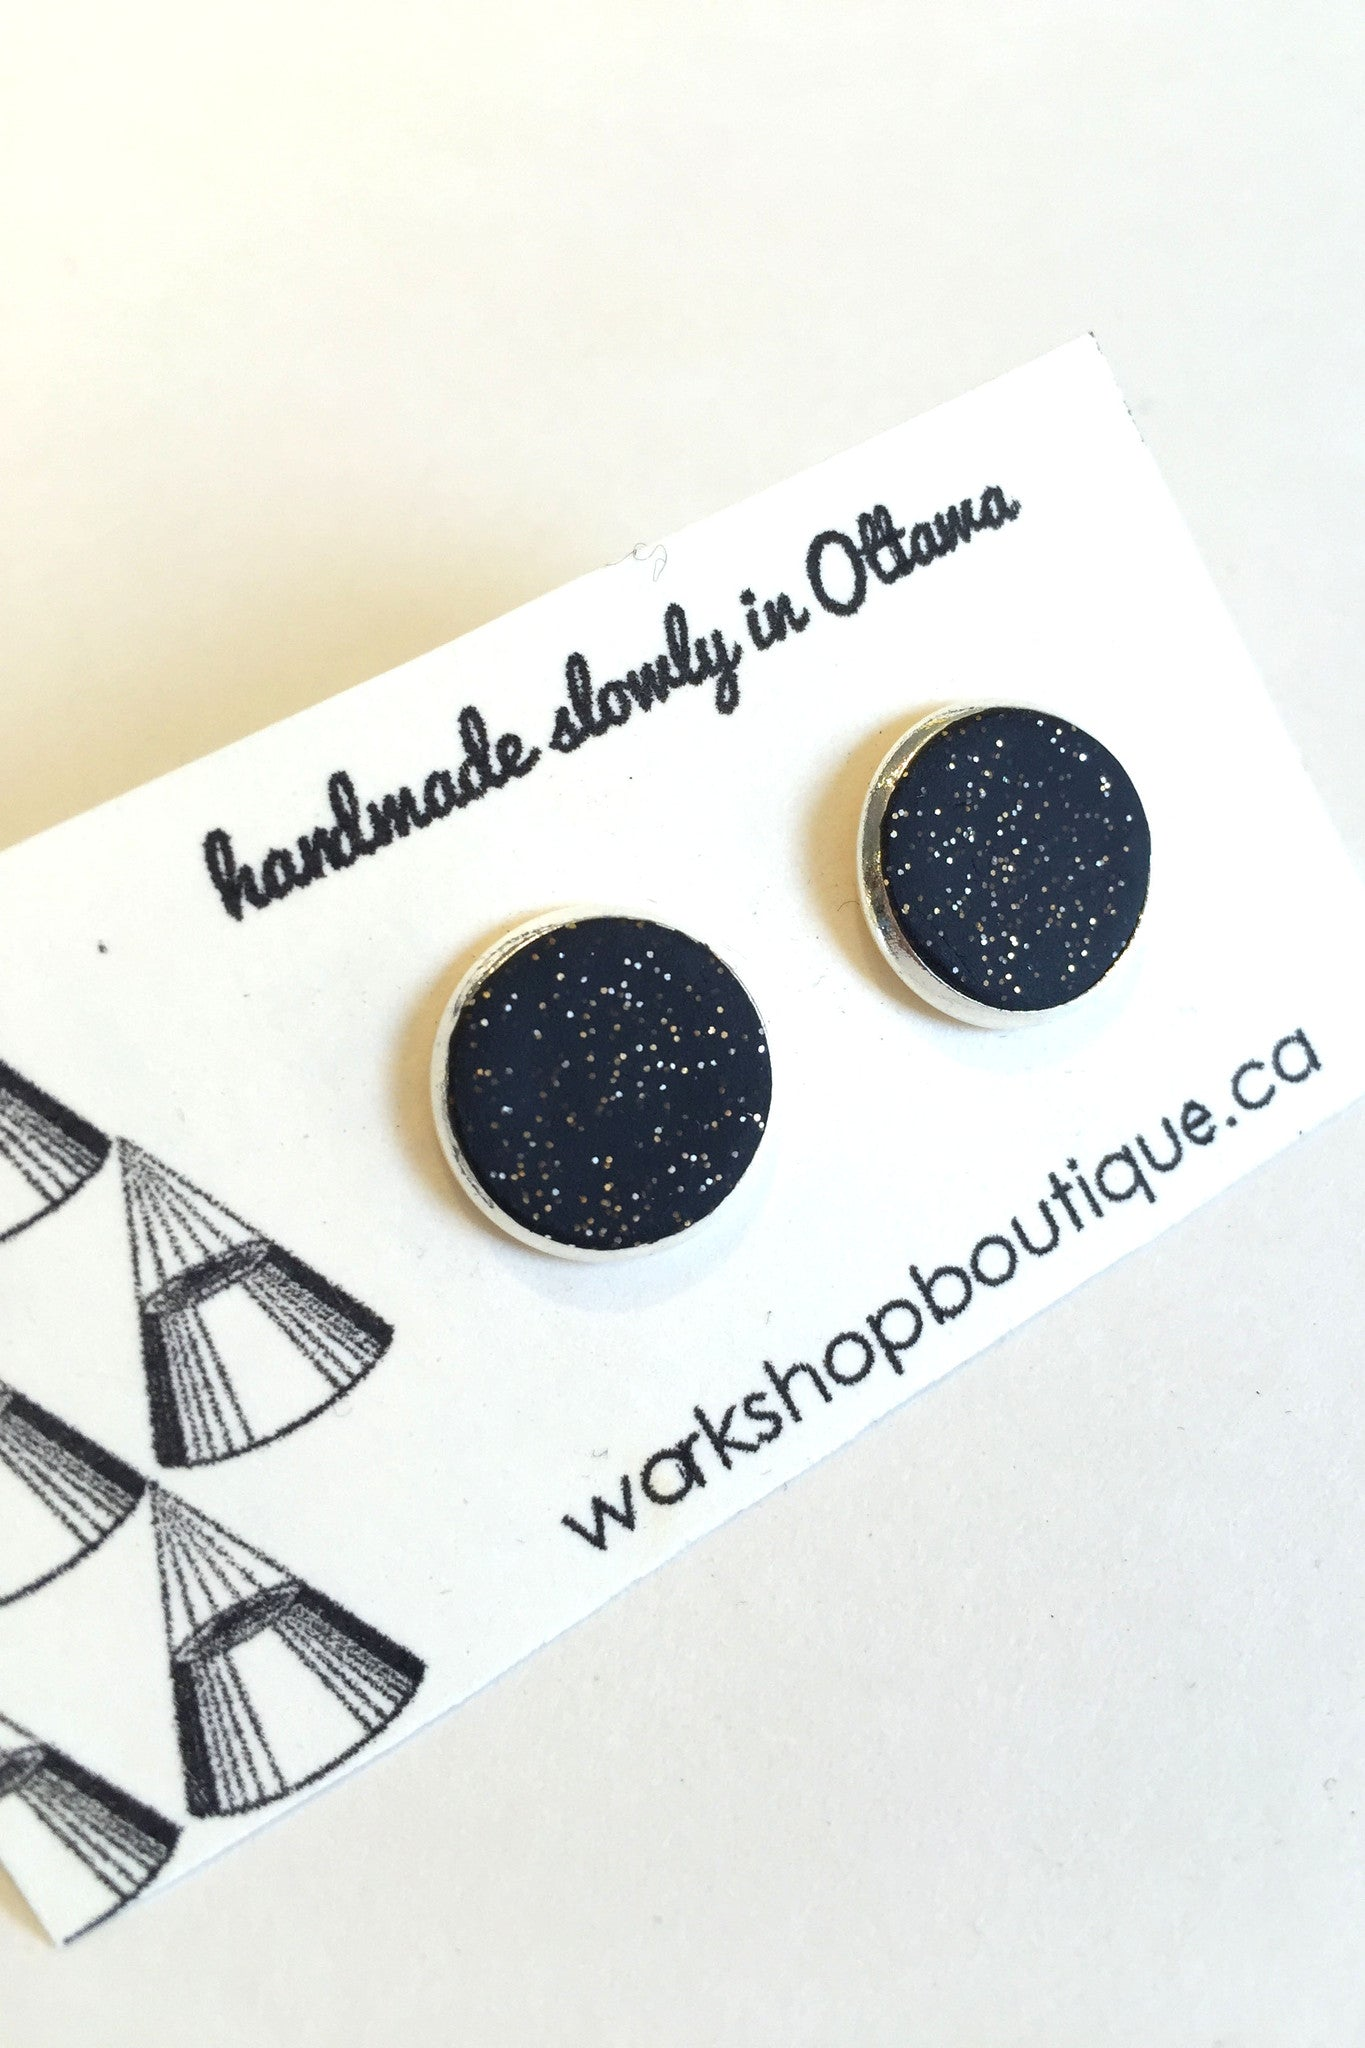 Handmade in Ottawa Workshop's own colour pop polymer clay earrings in glittery black